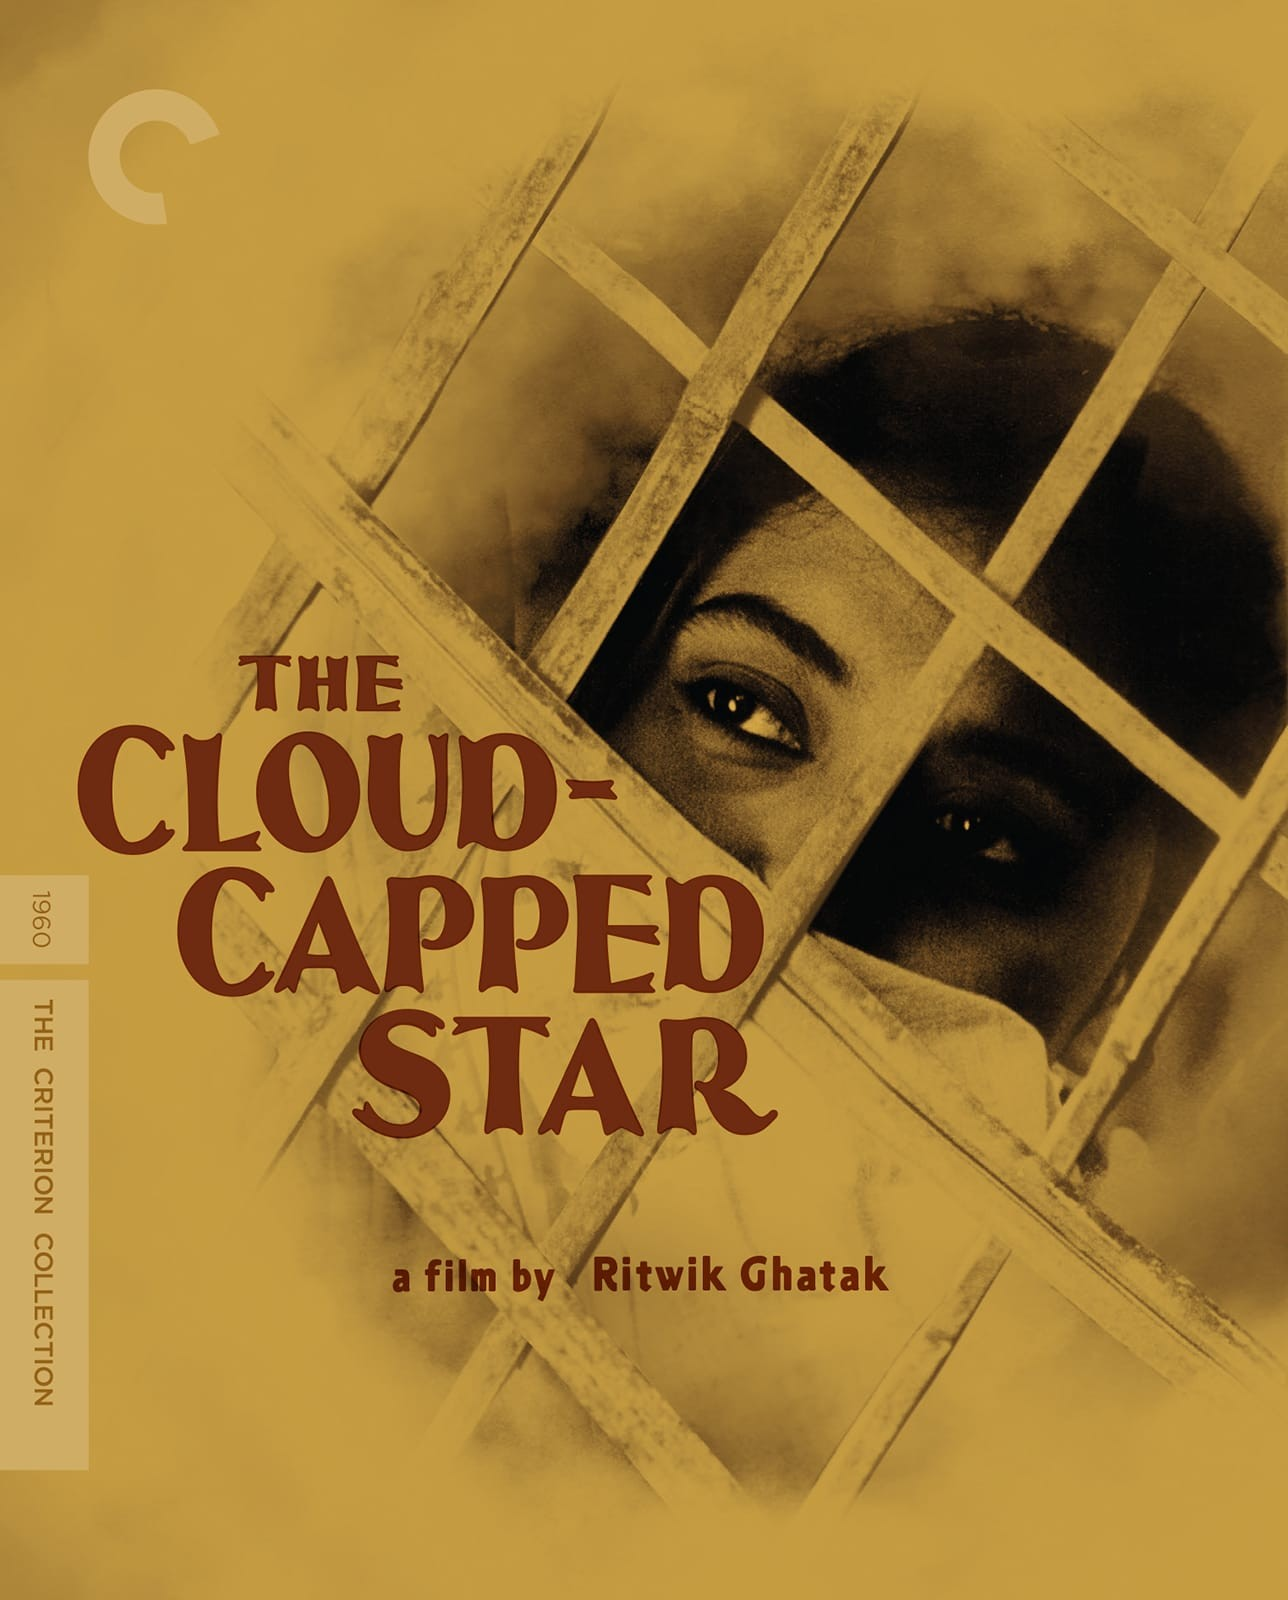 The Cloud-Capped Star (1960) | The Criterion Collection